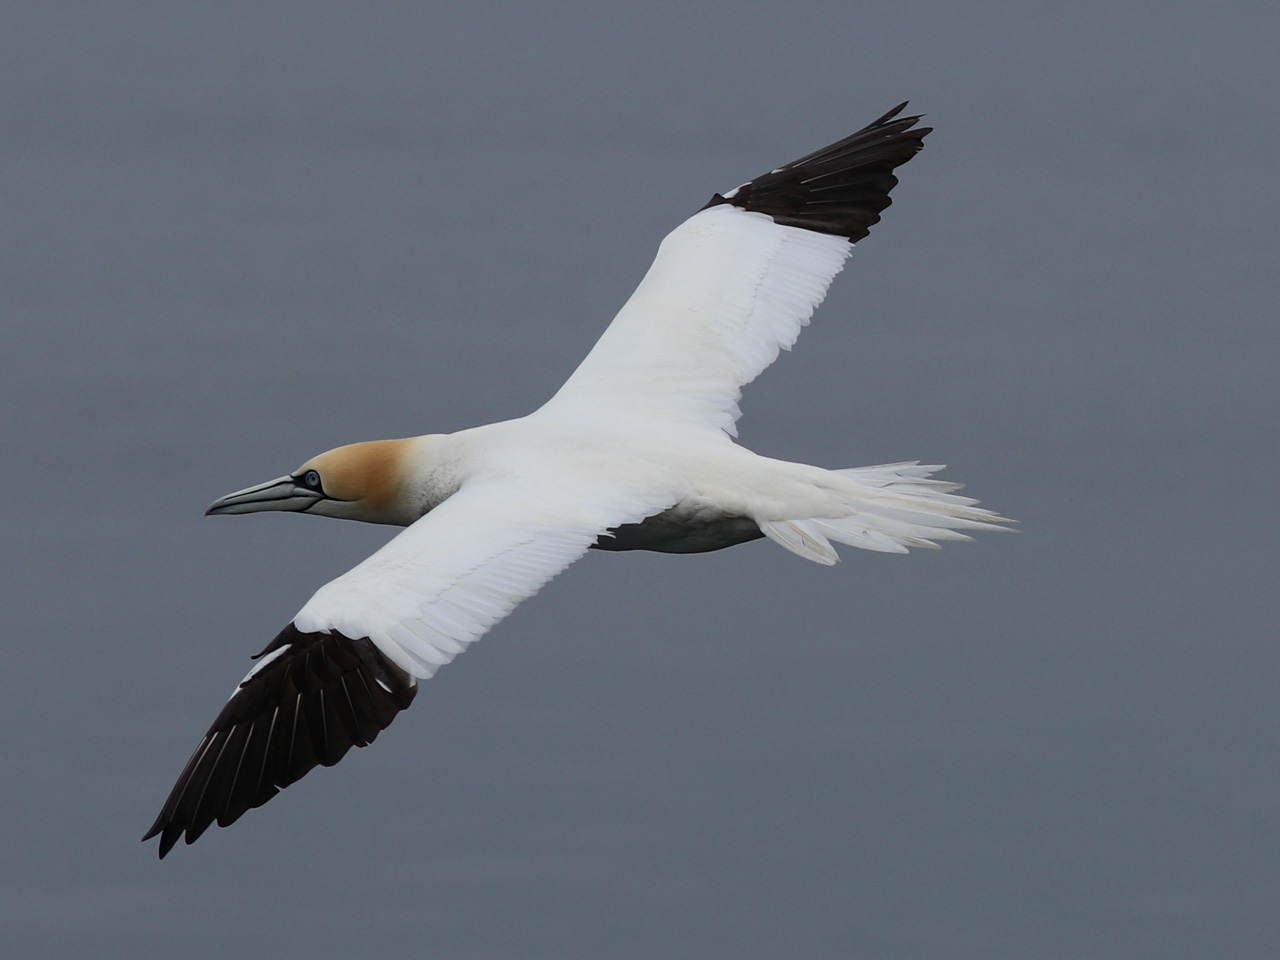 A northern gannet soars above the ocean, Atlantic Ocean